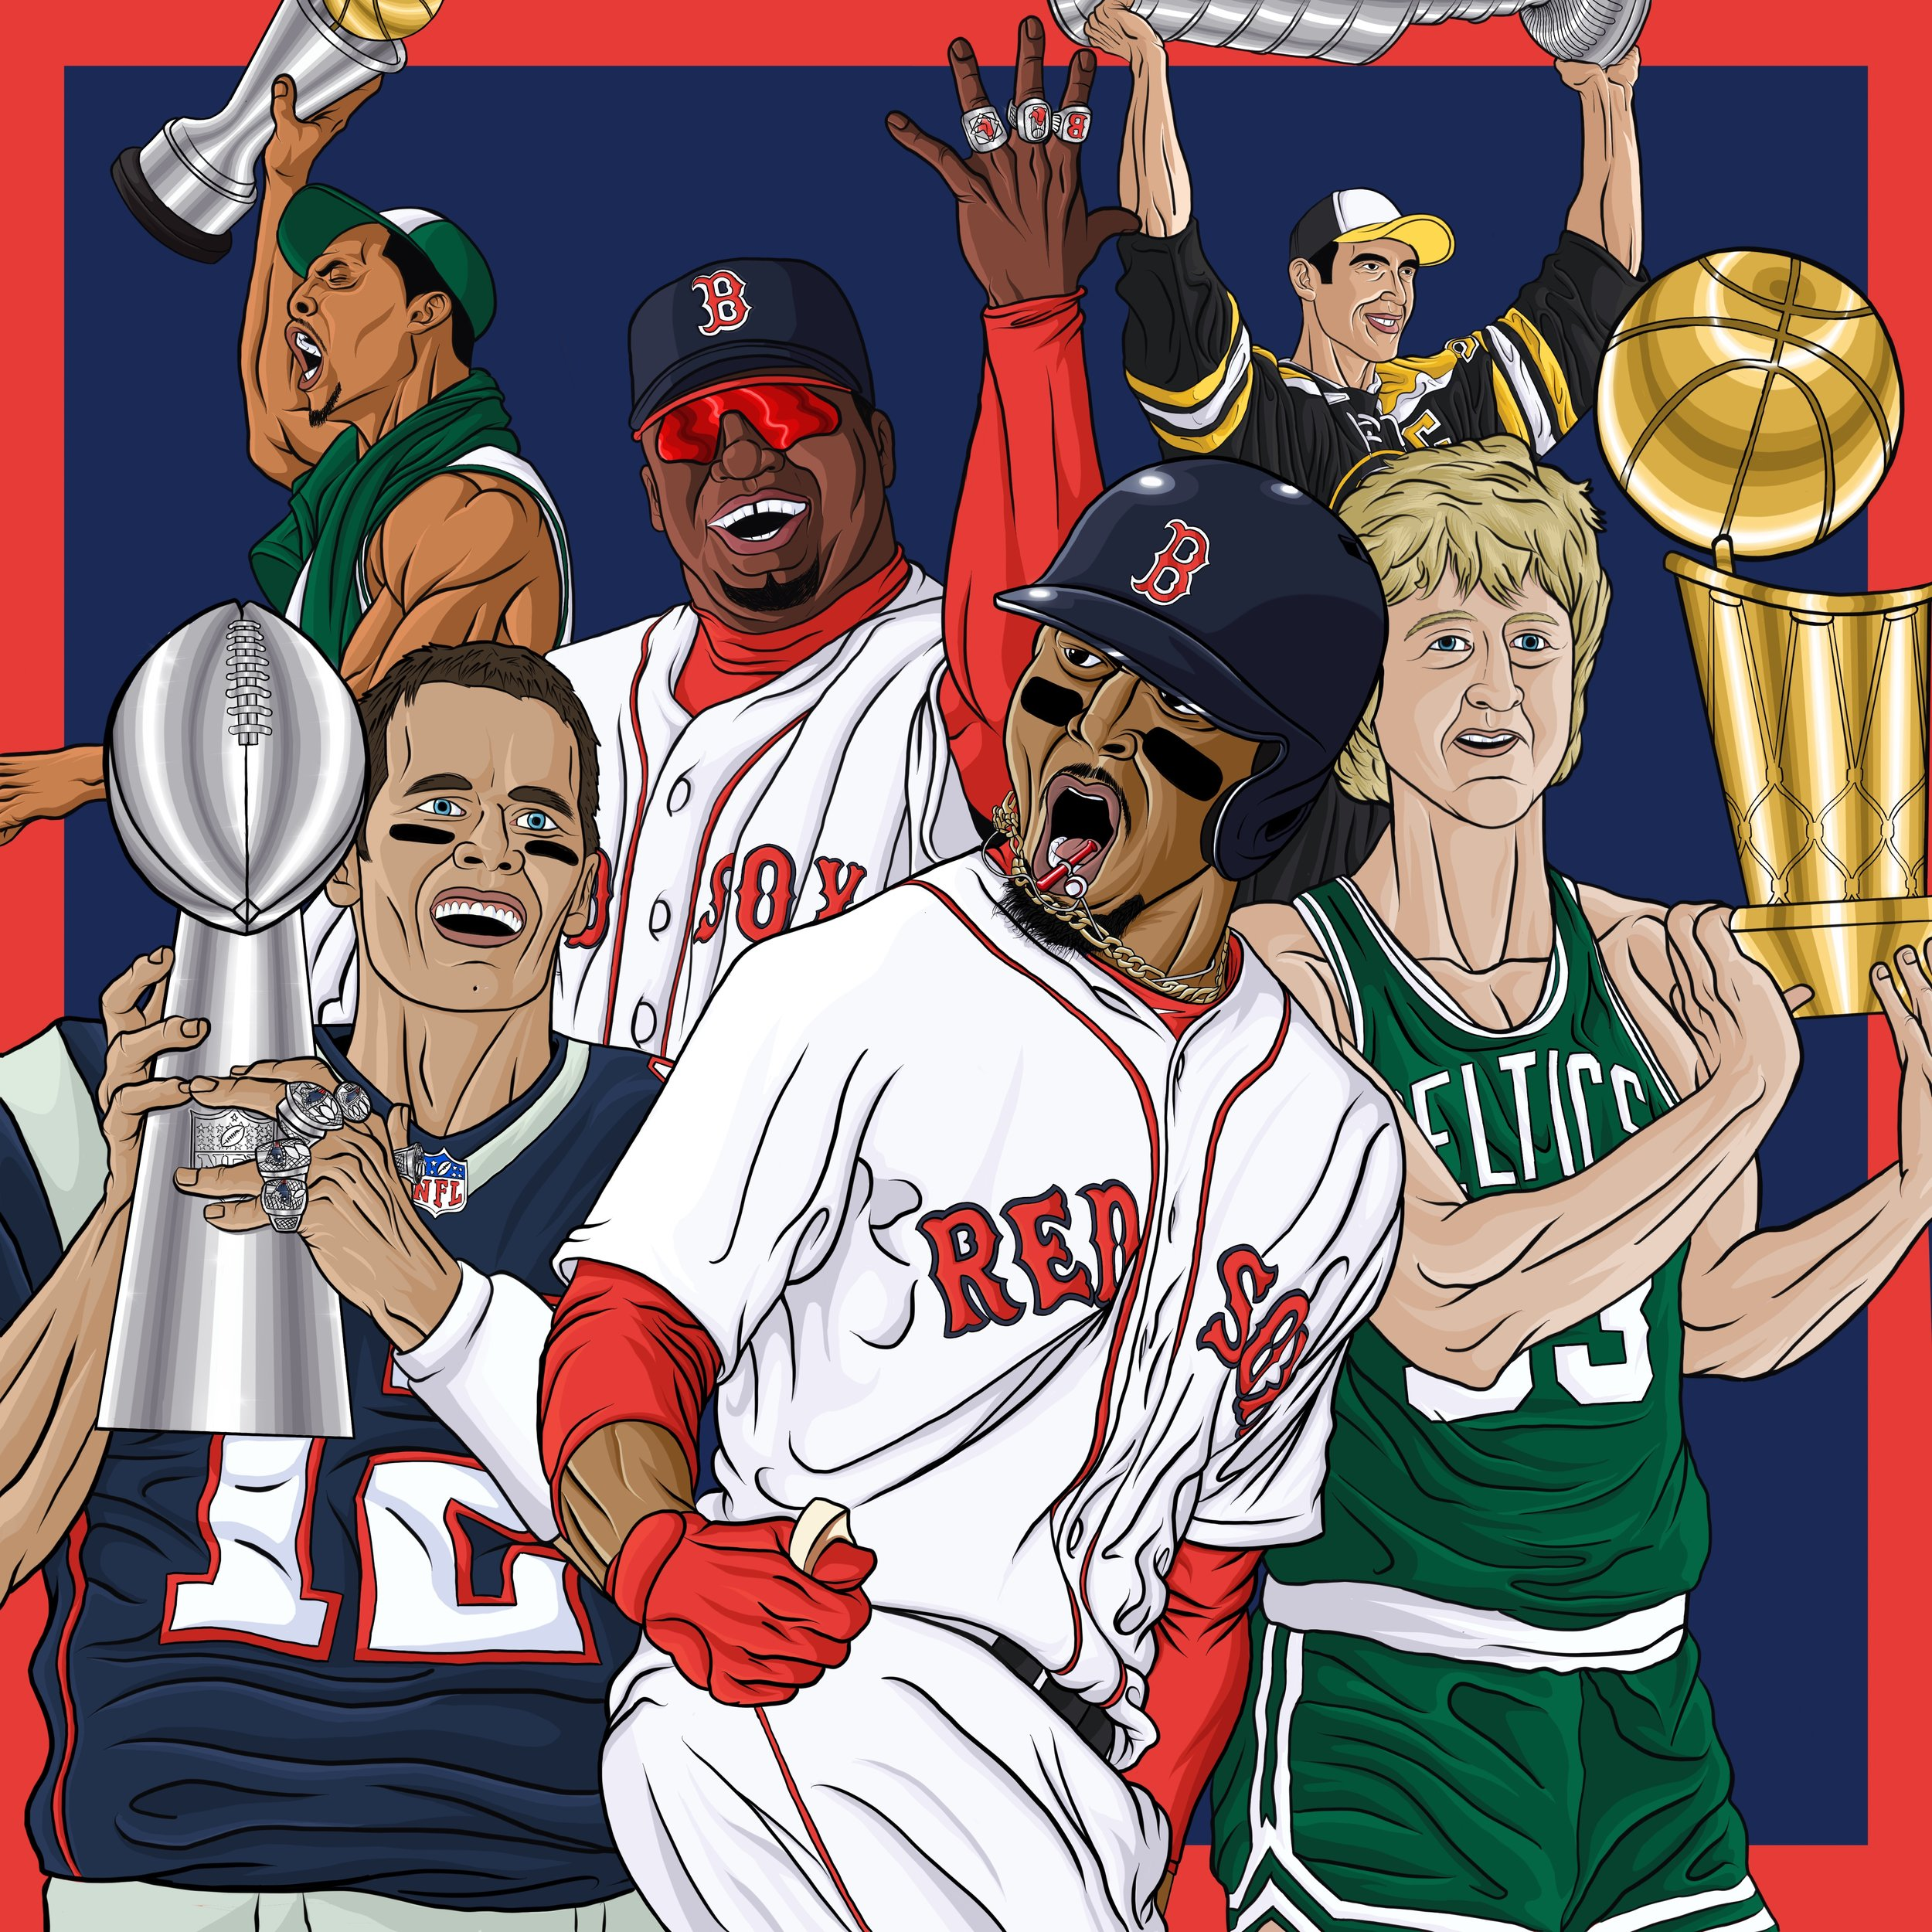 mlb-redsox-championship-illustration.JPG